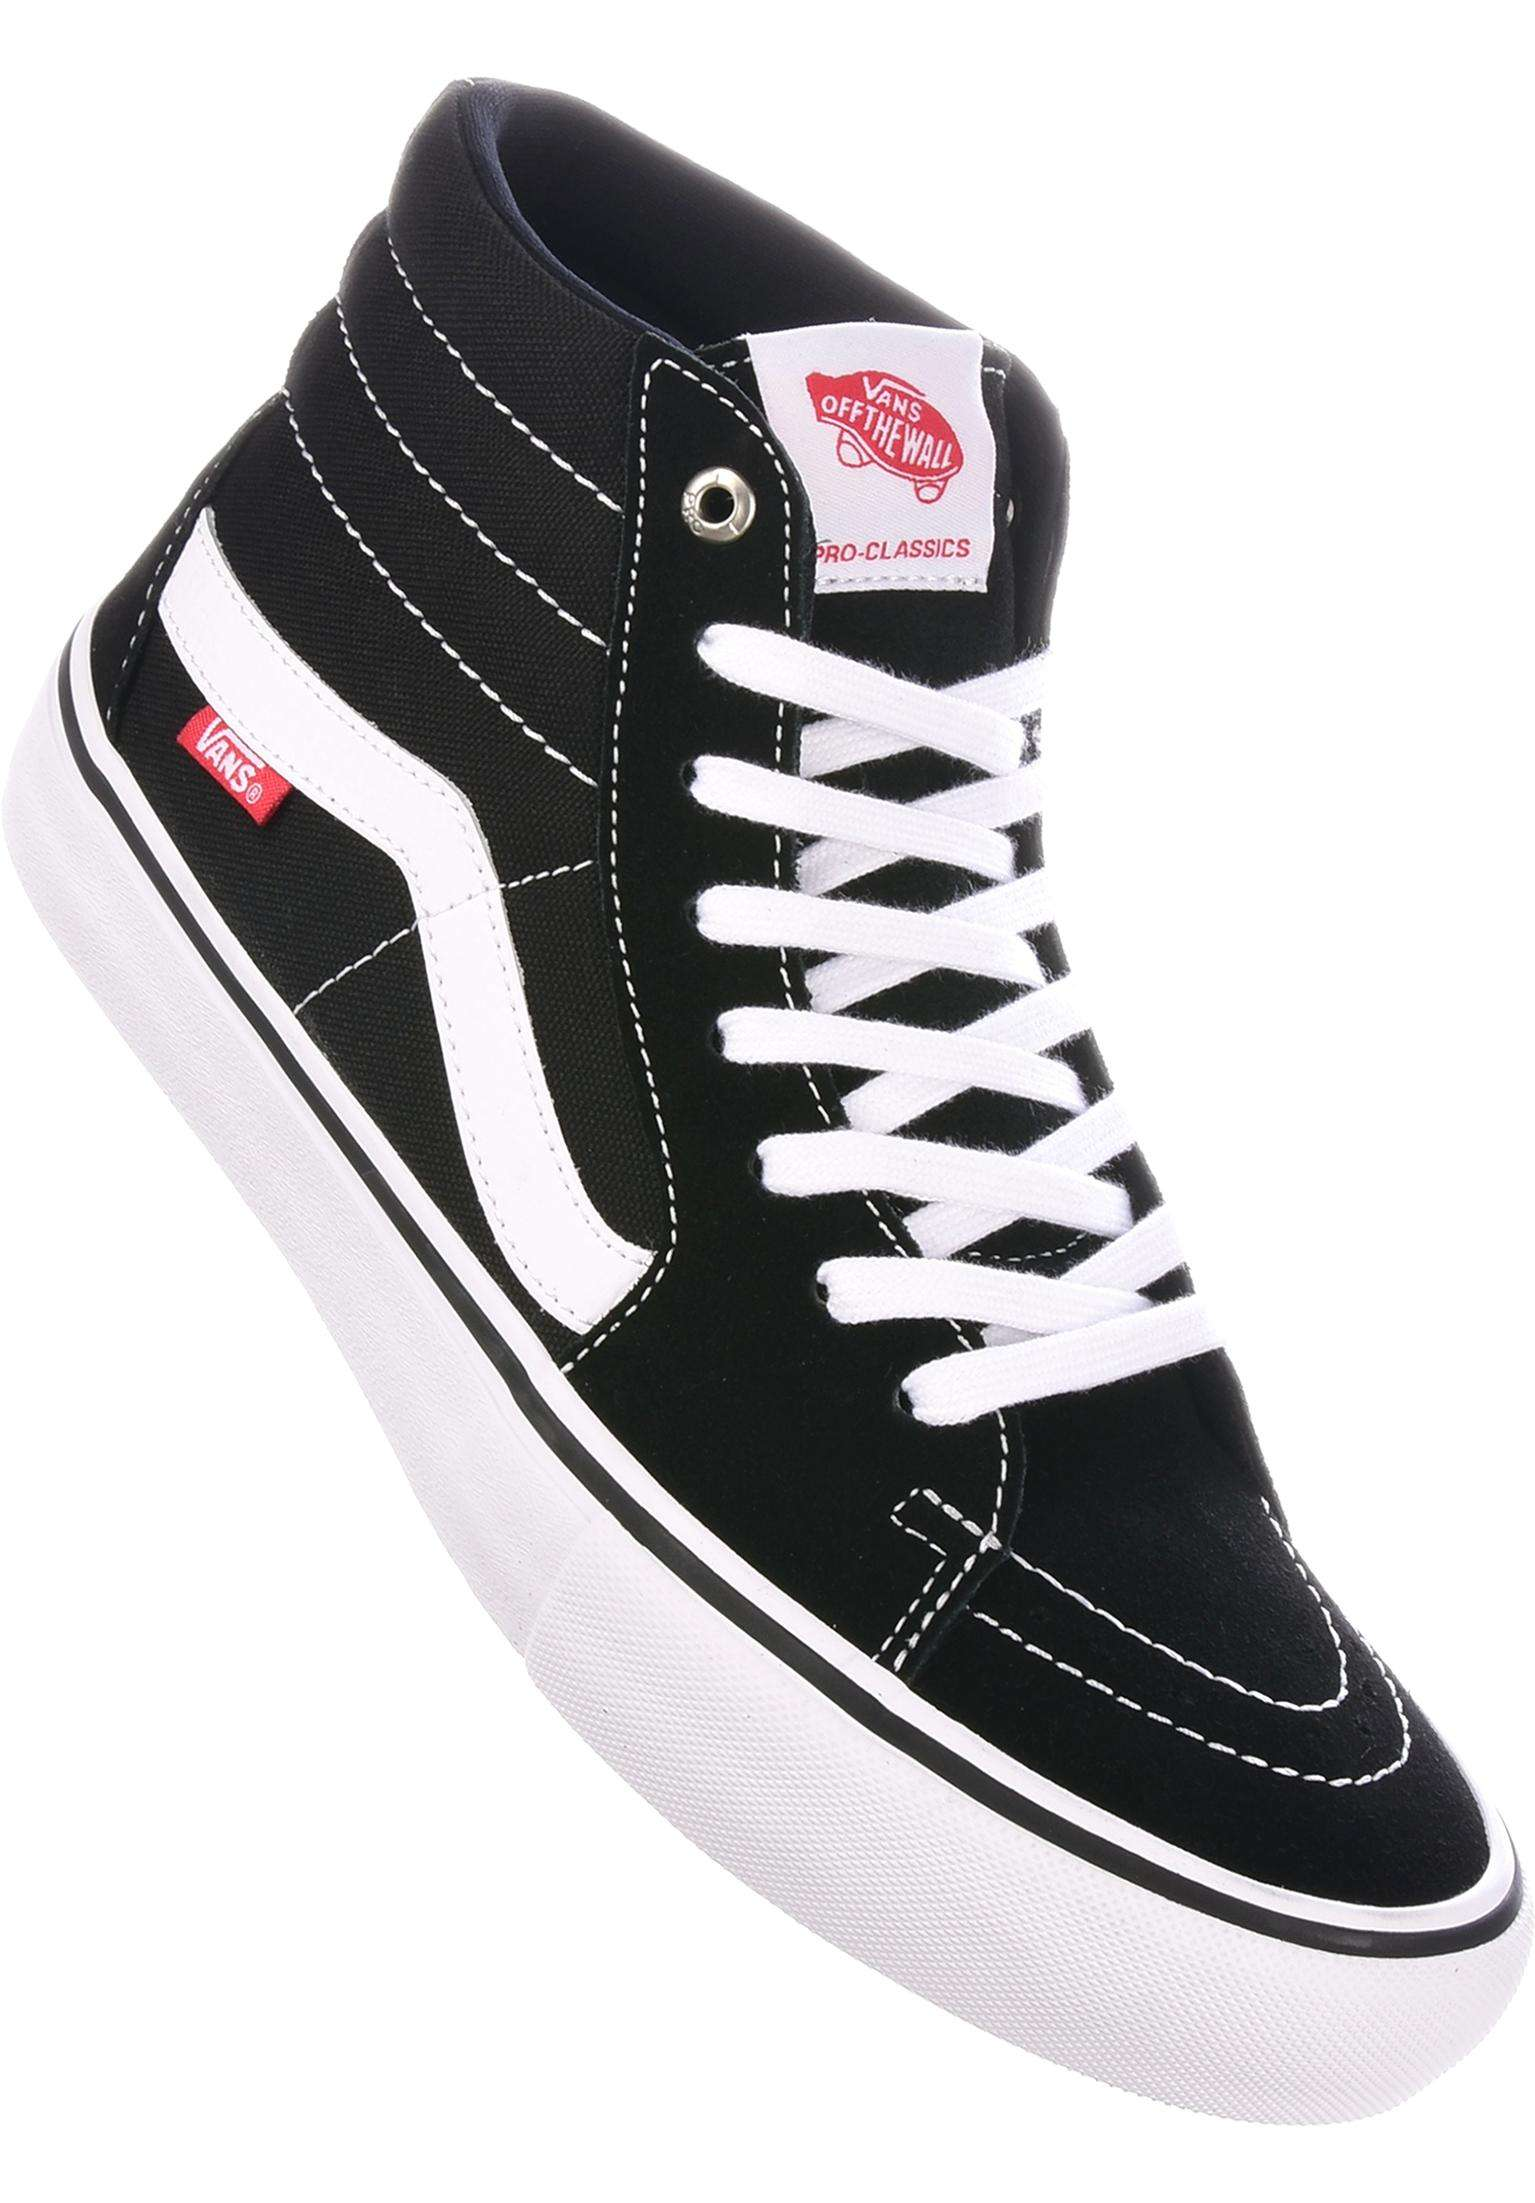 41a70319613b Sk8 Hi Pro Vans All Shoes in black-white for Men